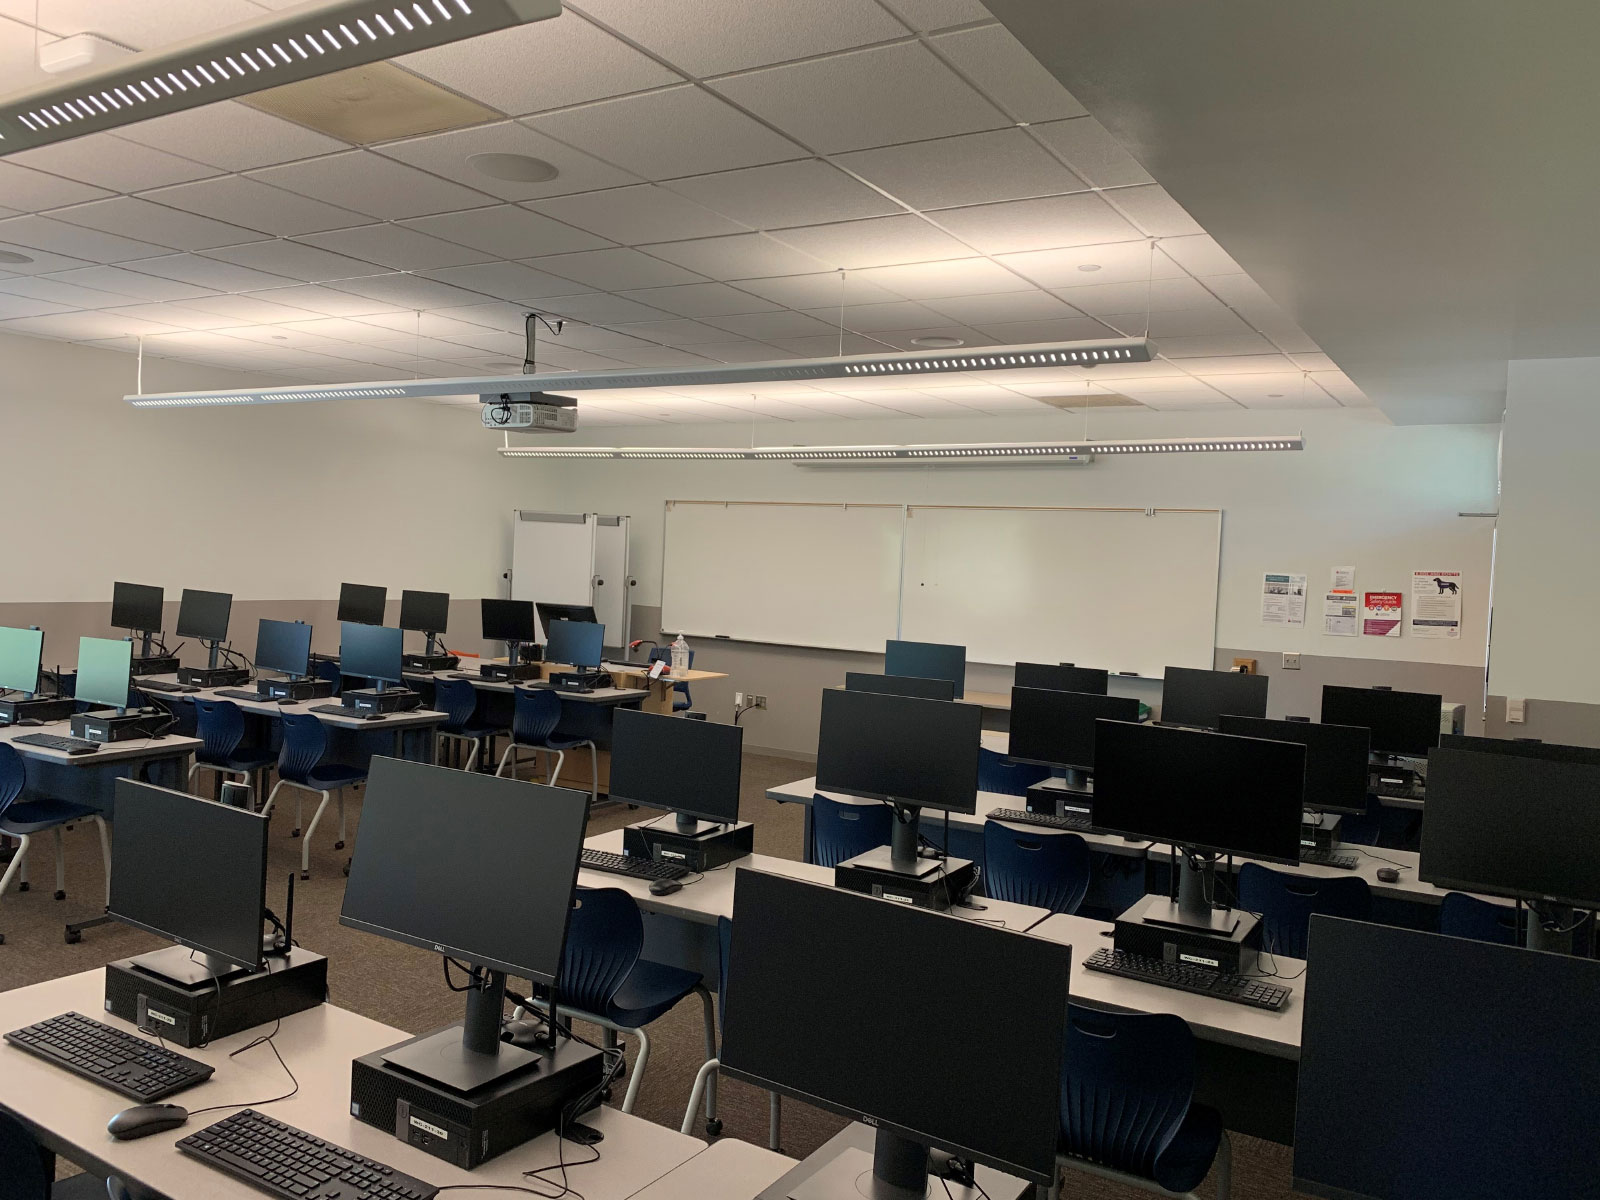 Angled front view of rows of computers on desks in Wilsonville's Computer Lab W211